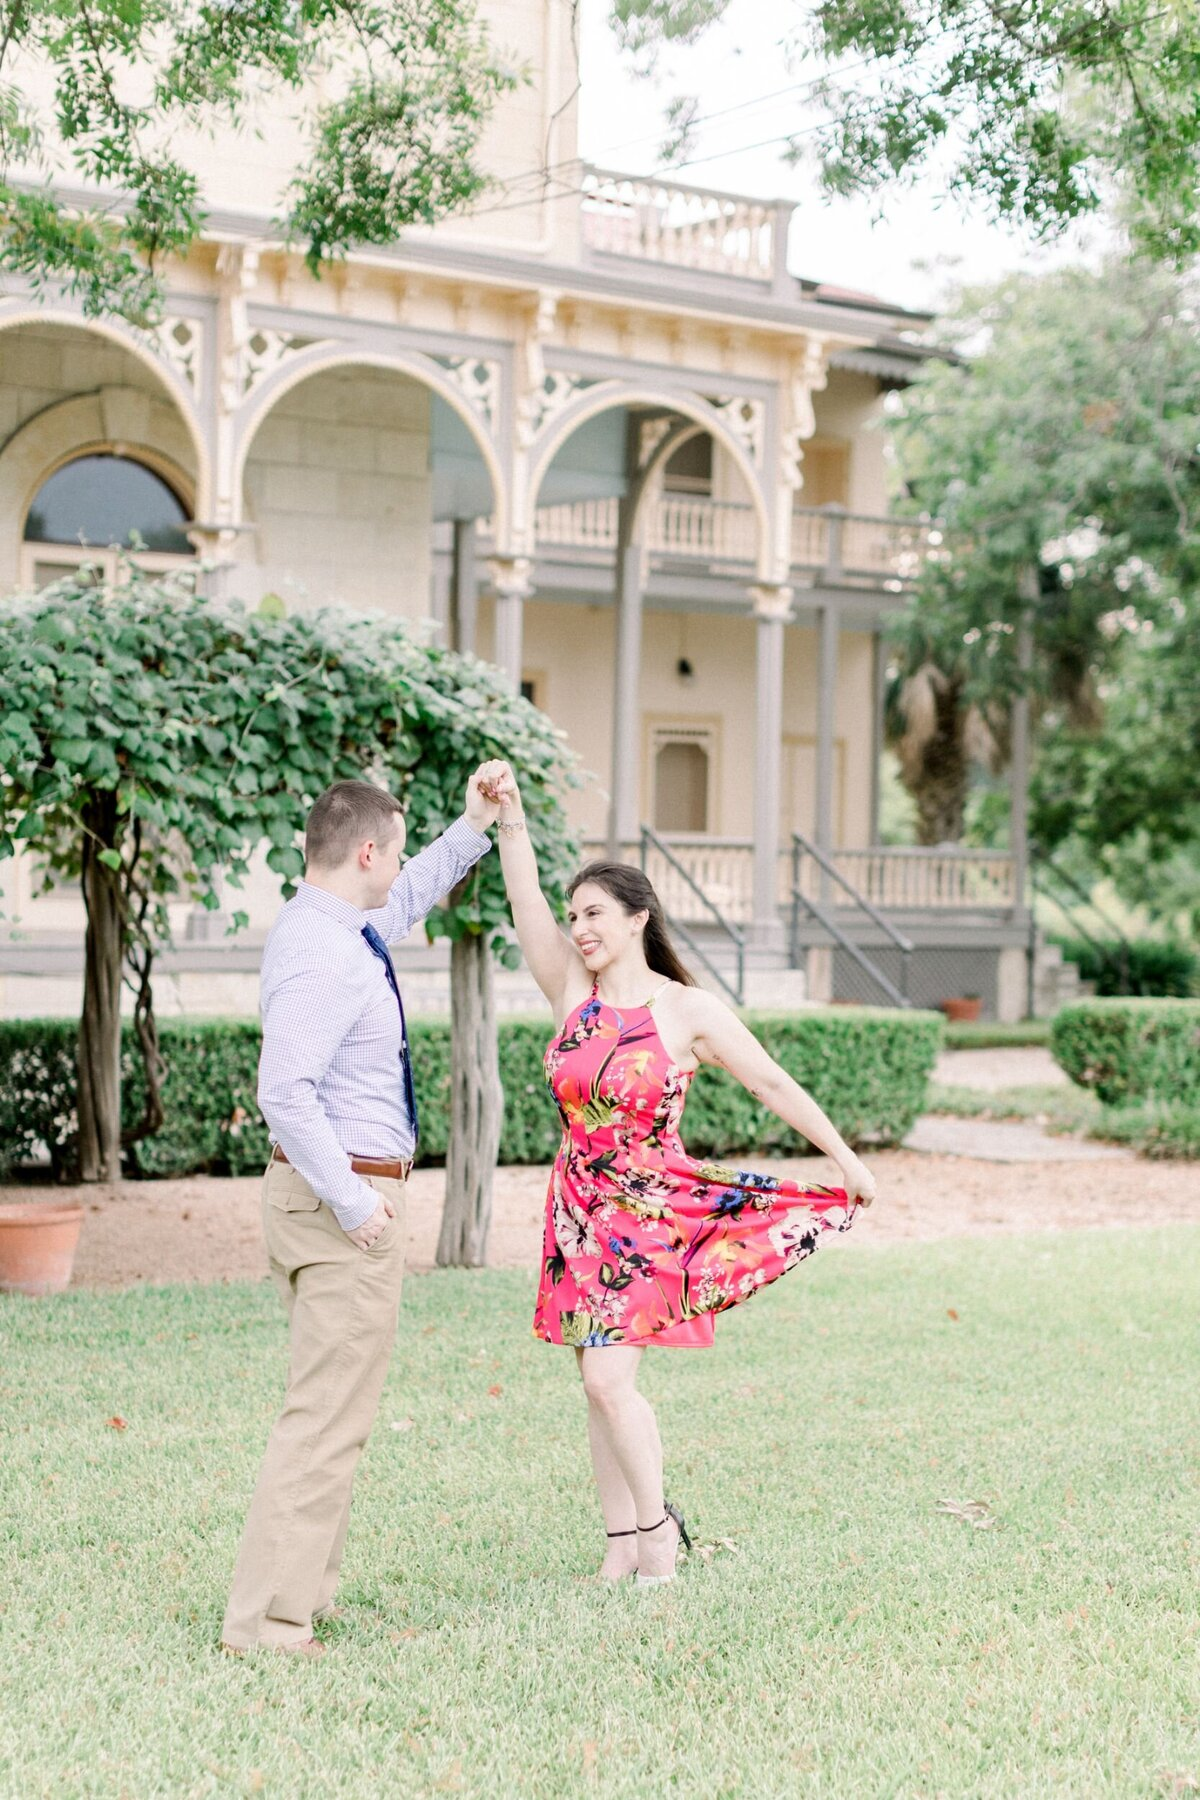 KingWilliamEngagement-AnnaKayPhotography-SanAntonioWeddingPhotographer-64